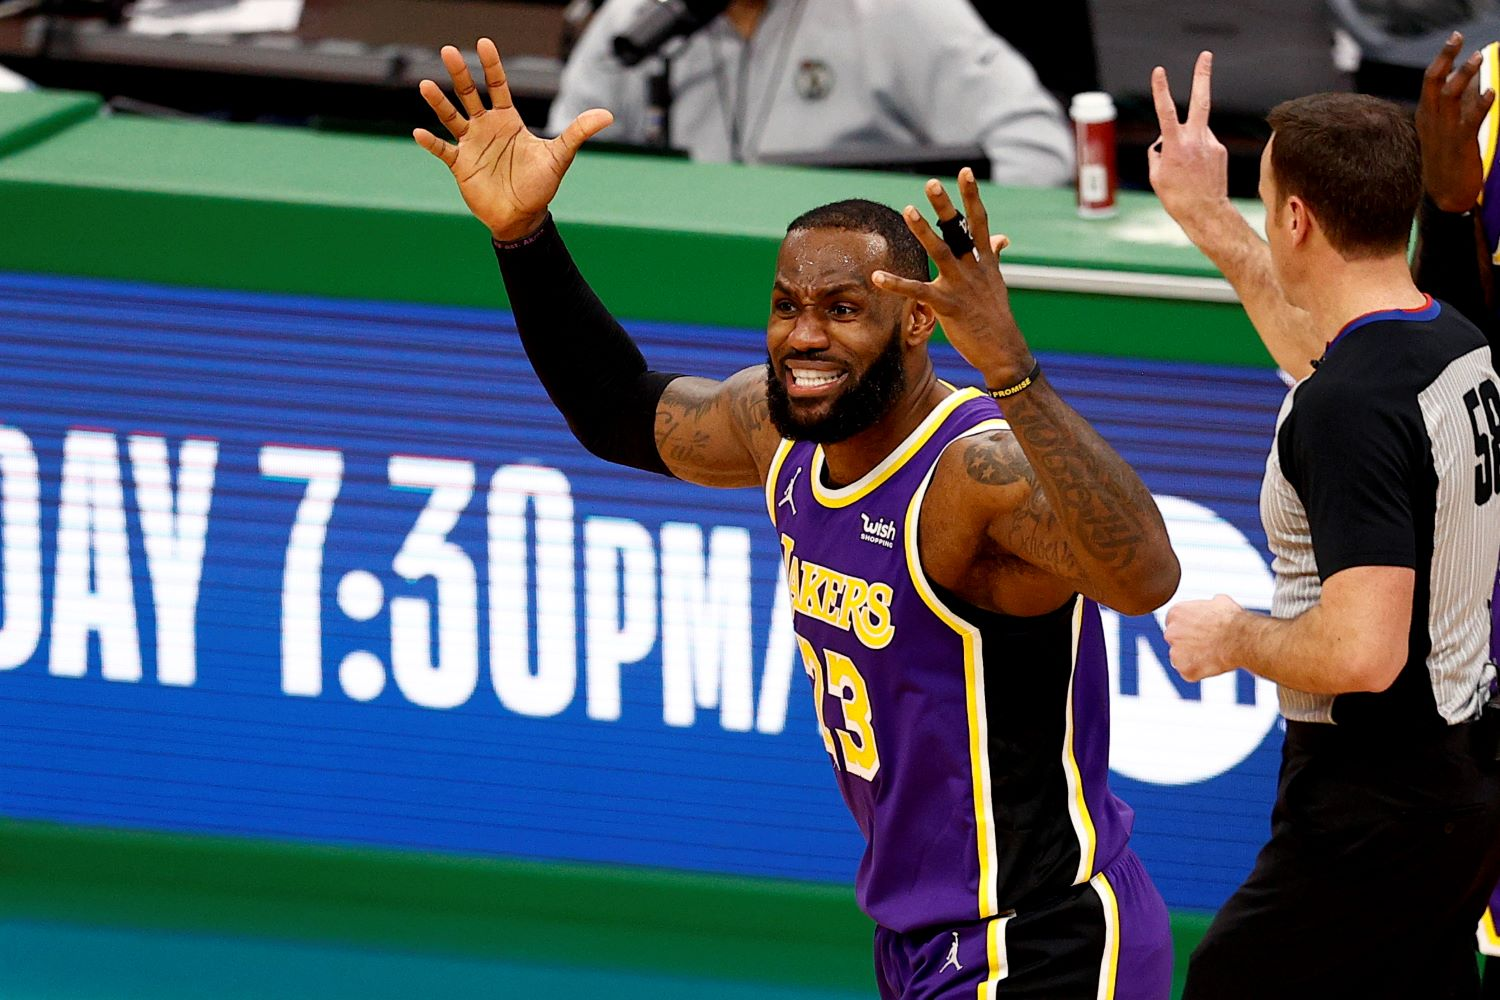 LeBron James may be playing at an All-Star level, but the Lakers star is pissed off at the NBA's decision to hold the game in the first place.